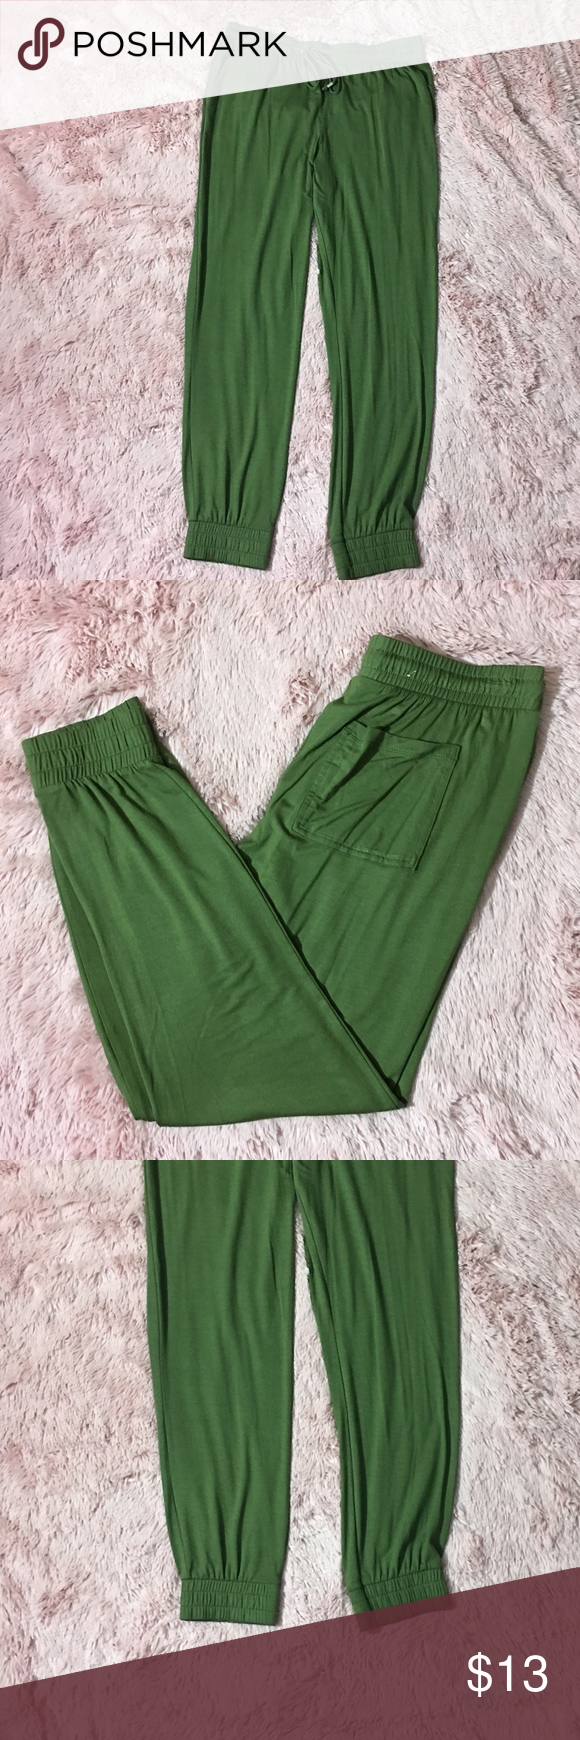 Old navy cinched cropped jogger New but no tag old navy Green cinched cropped jogger Old Navy Pants Track Pants & Joggers